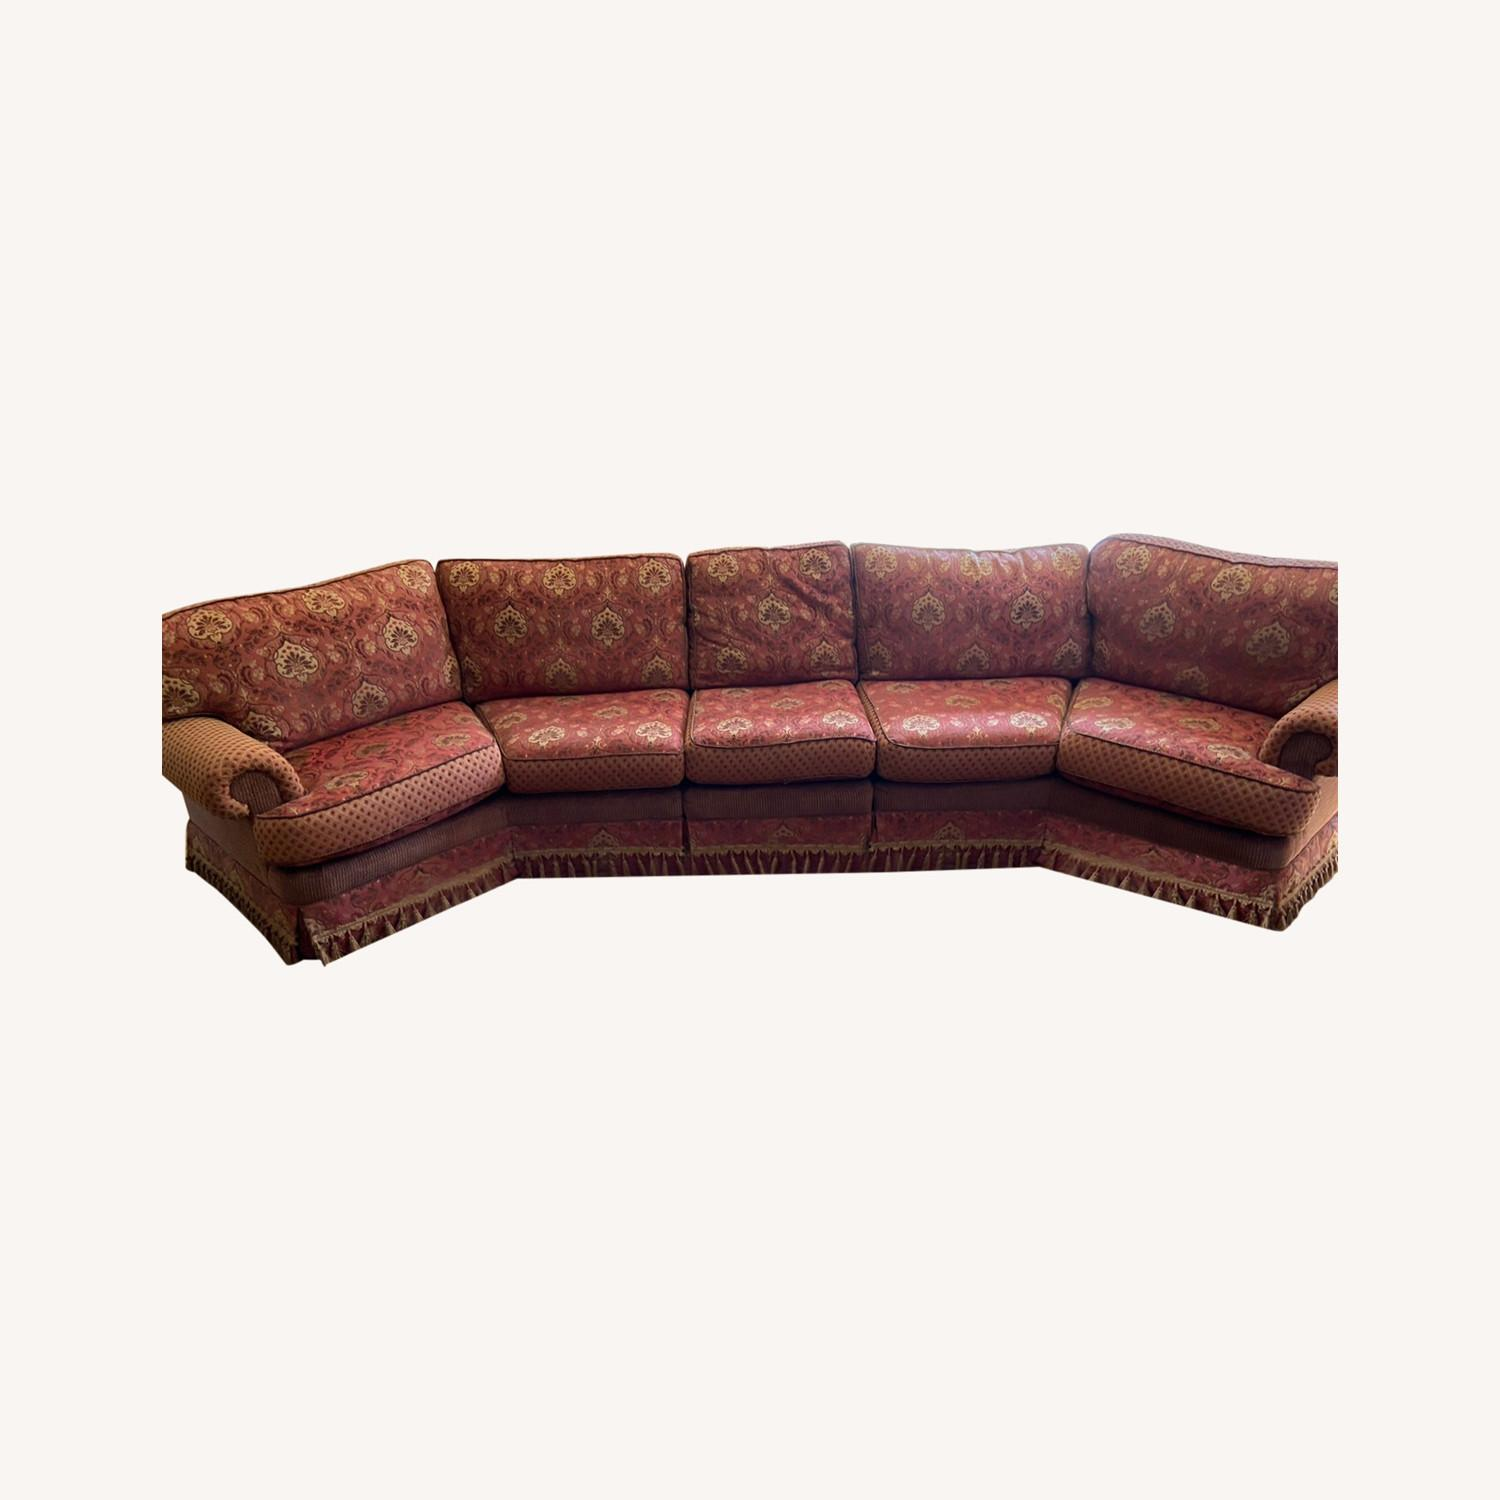 Sherrill Furniture 3 Piece Couch - image-4